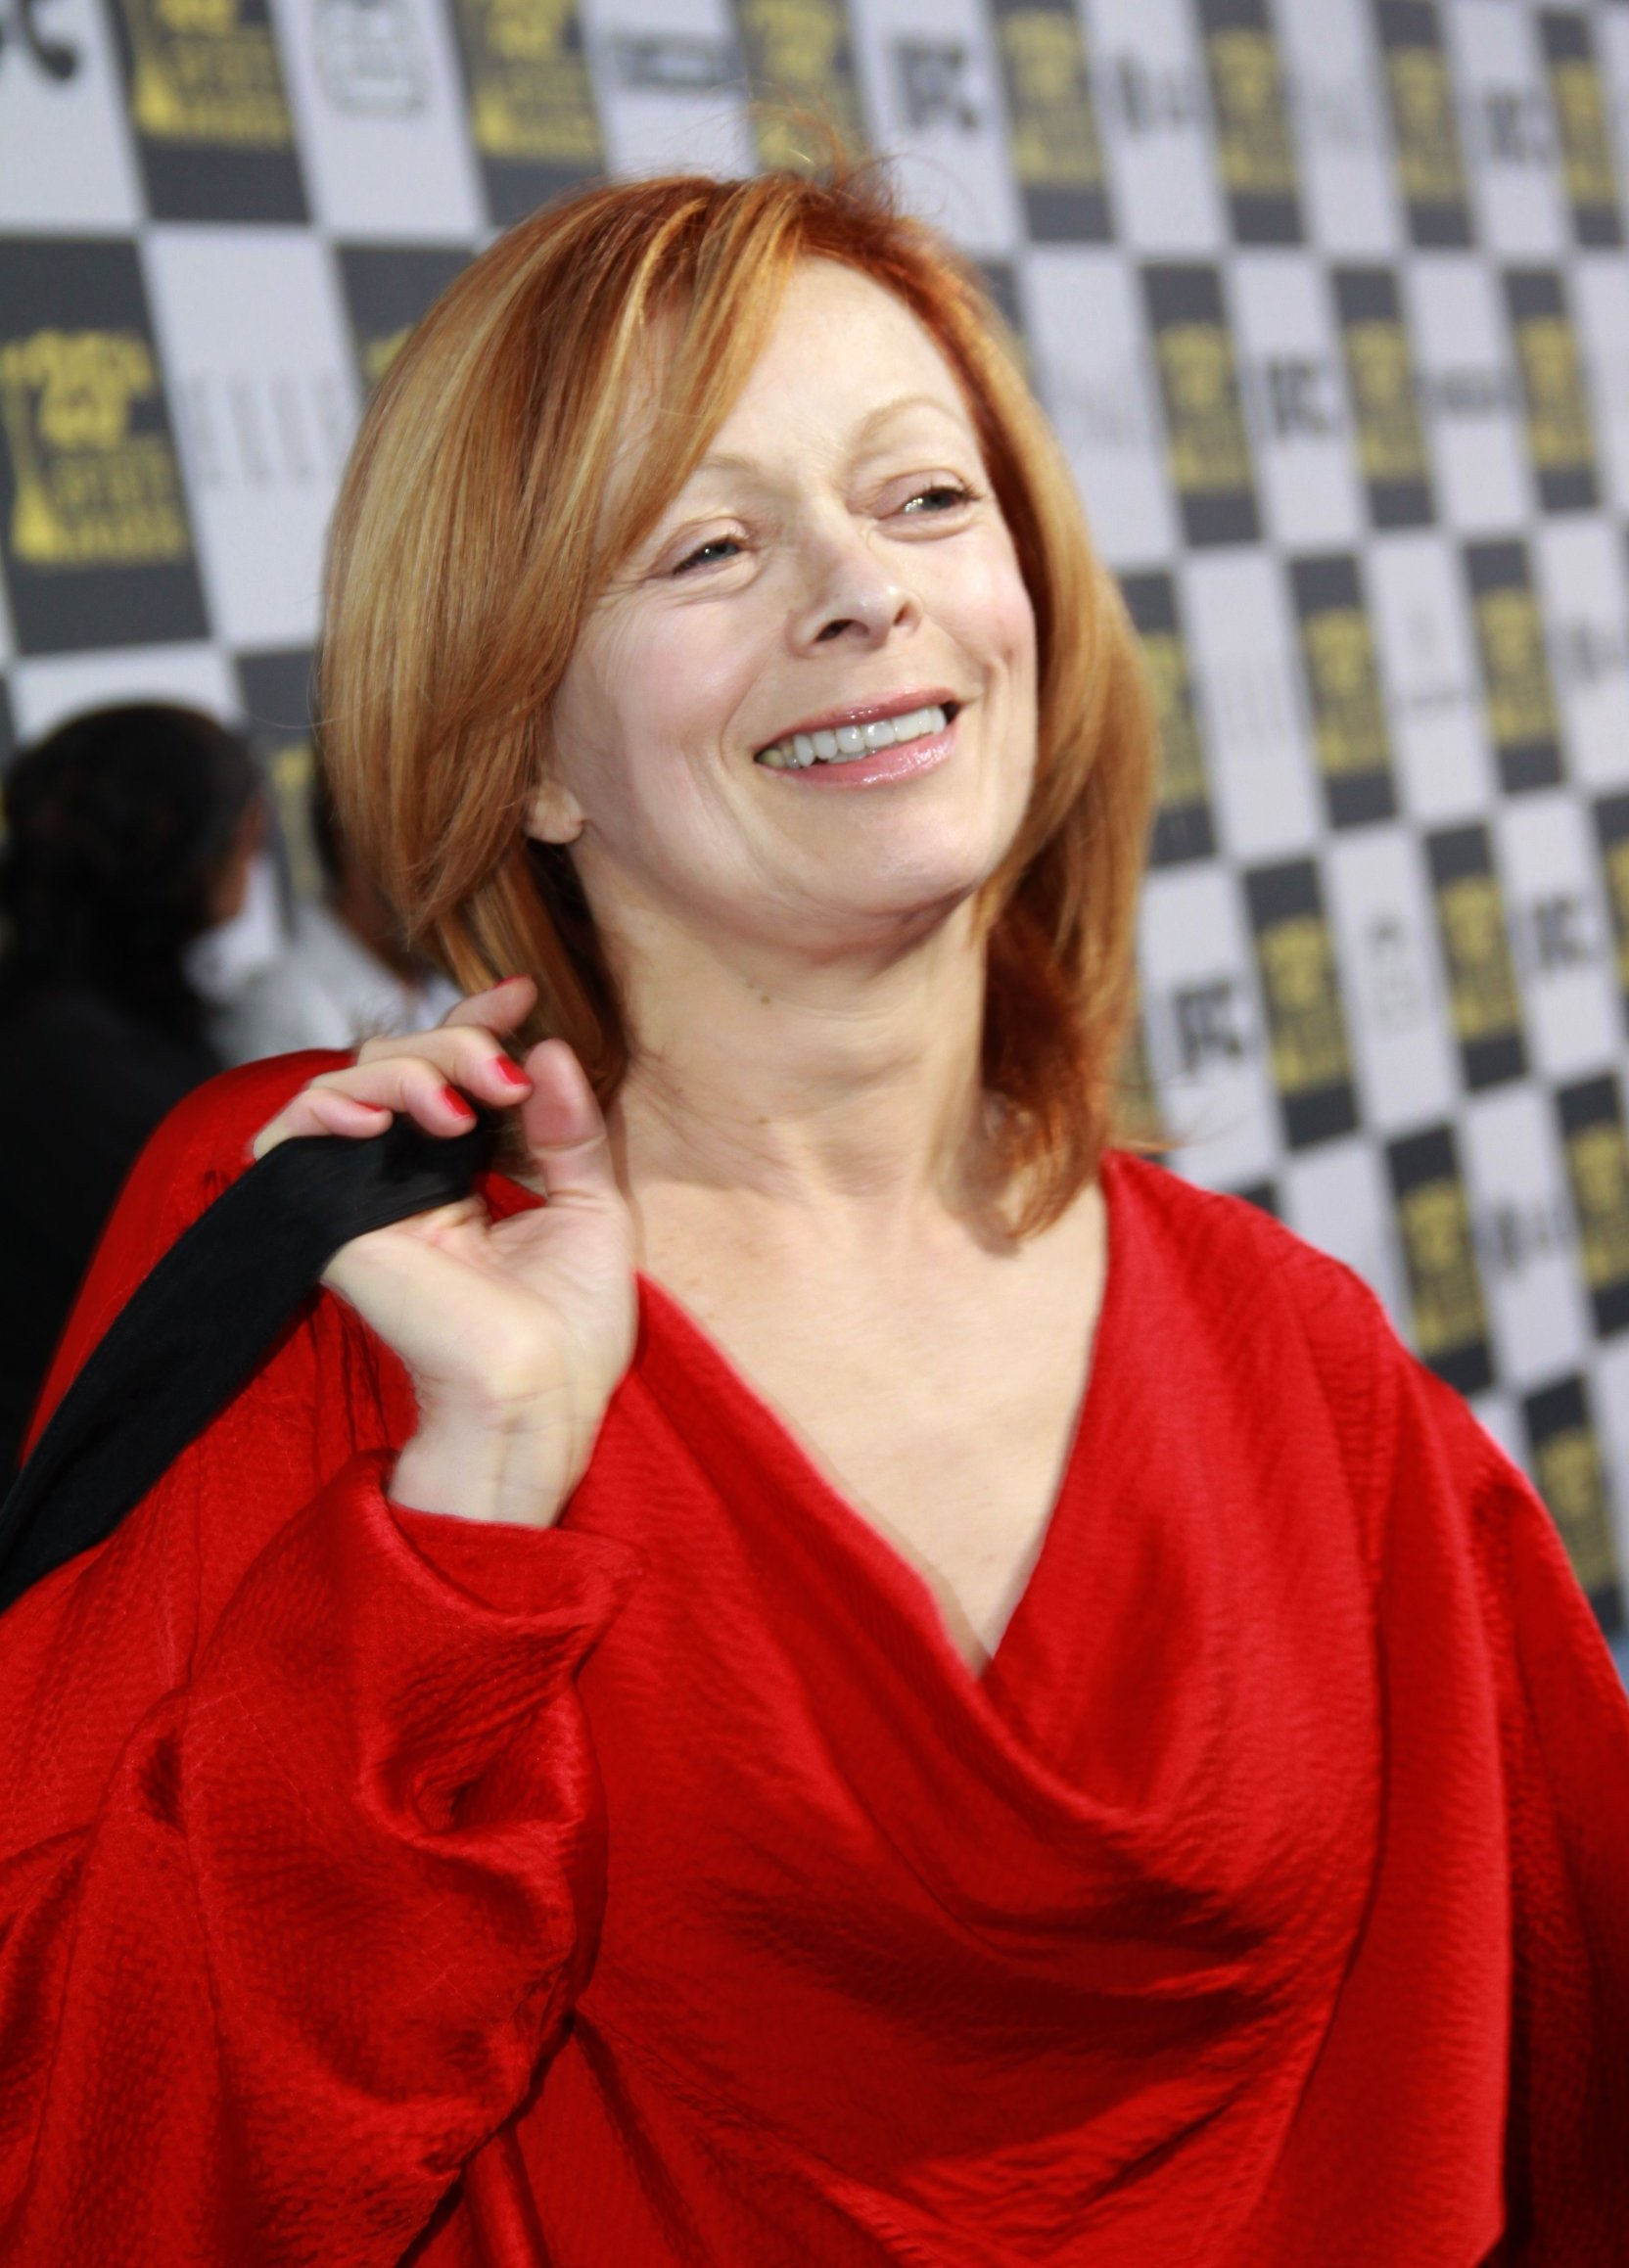 Tomdog, Frances Fisher at the 2010 Independent Spirit Awards, CC BY-SA 3.0